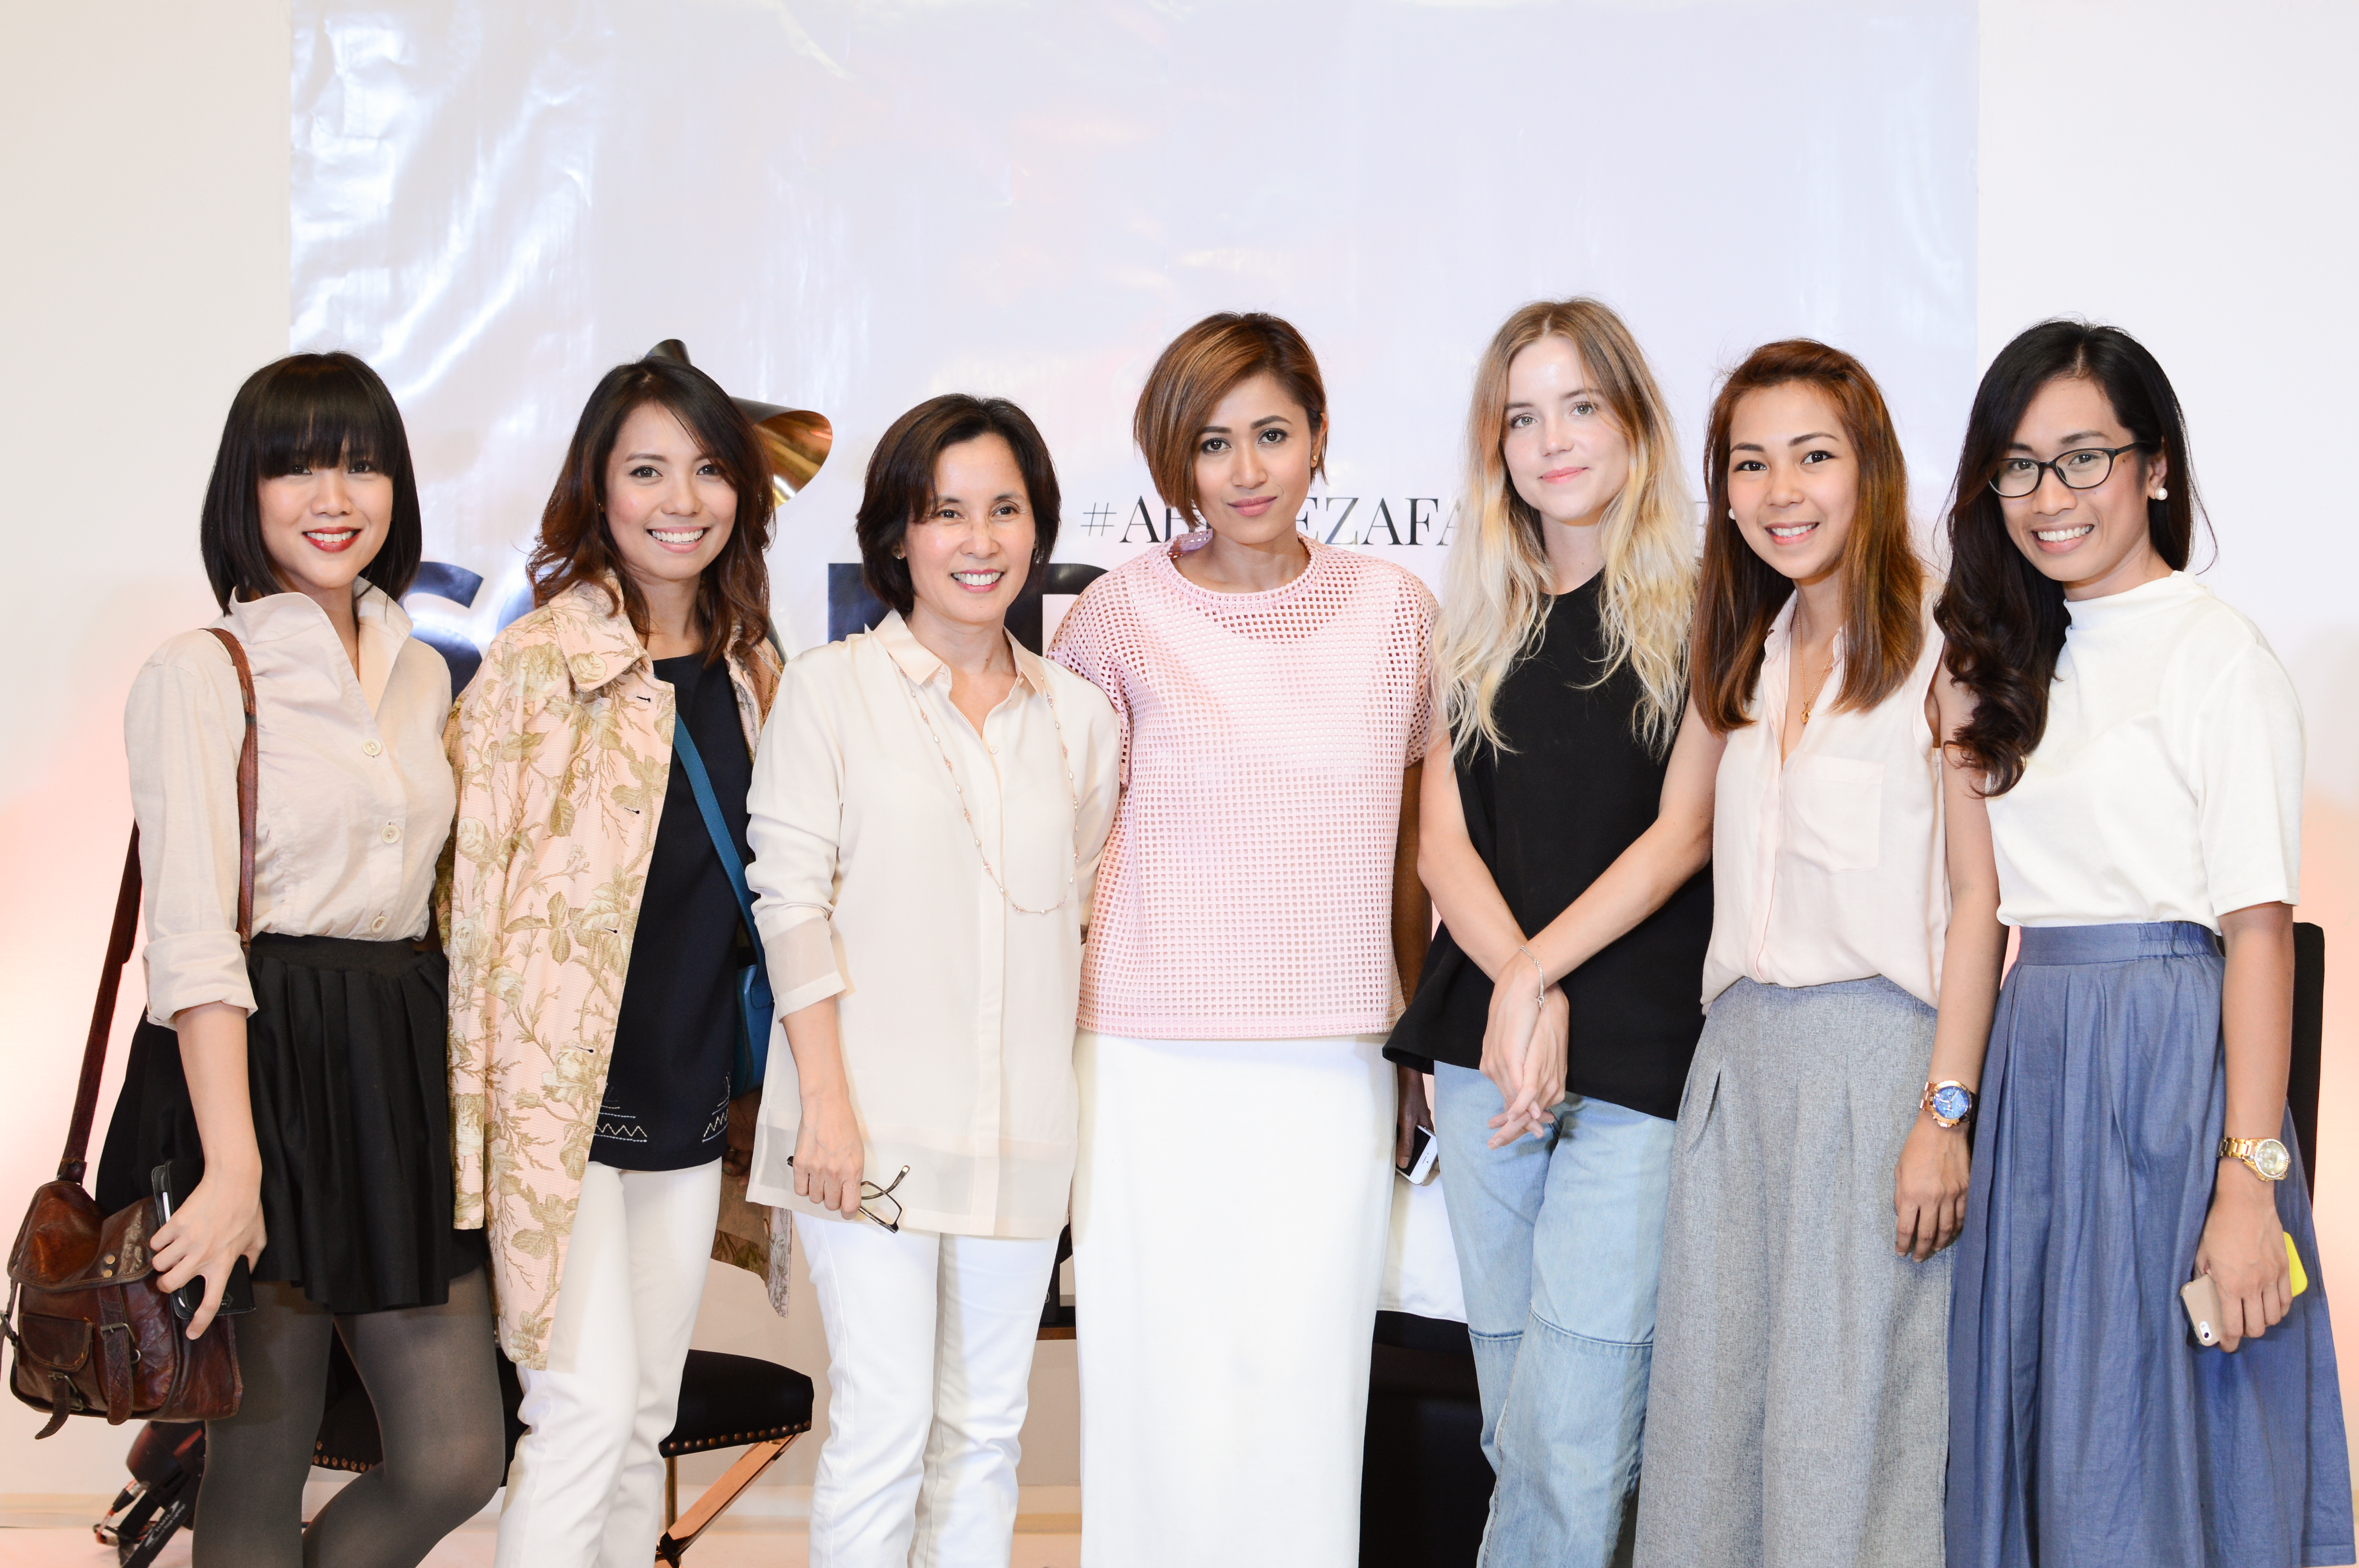 Pam Quiñones and Philippa Andrén with the Abreeza Mall marketing team